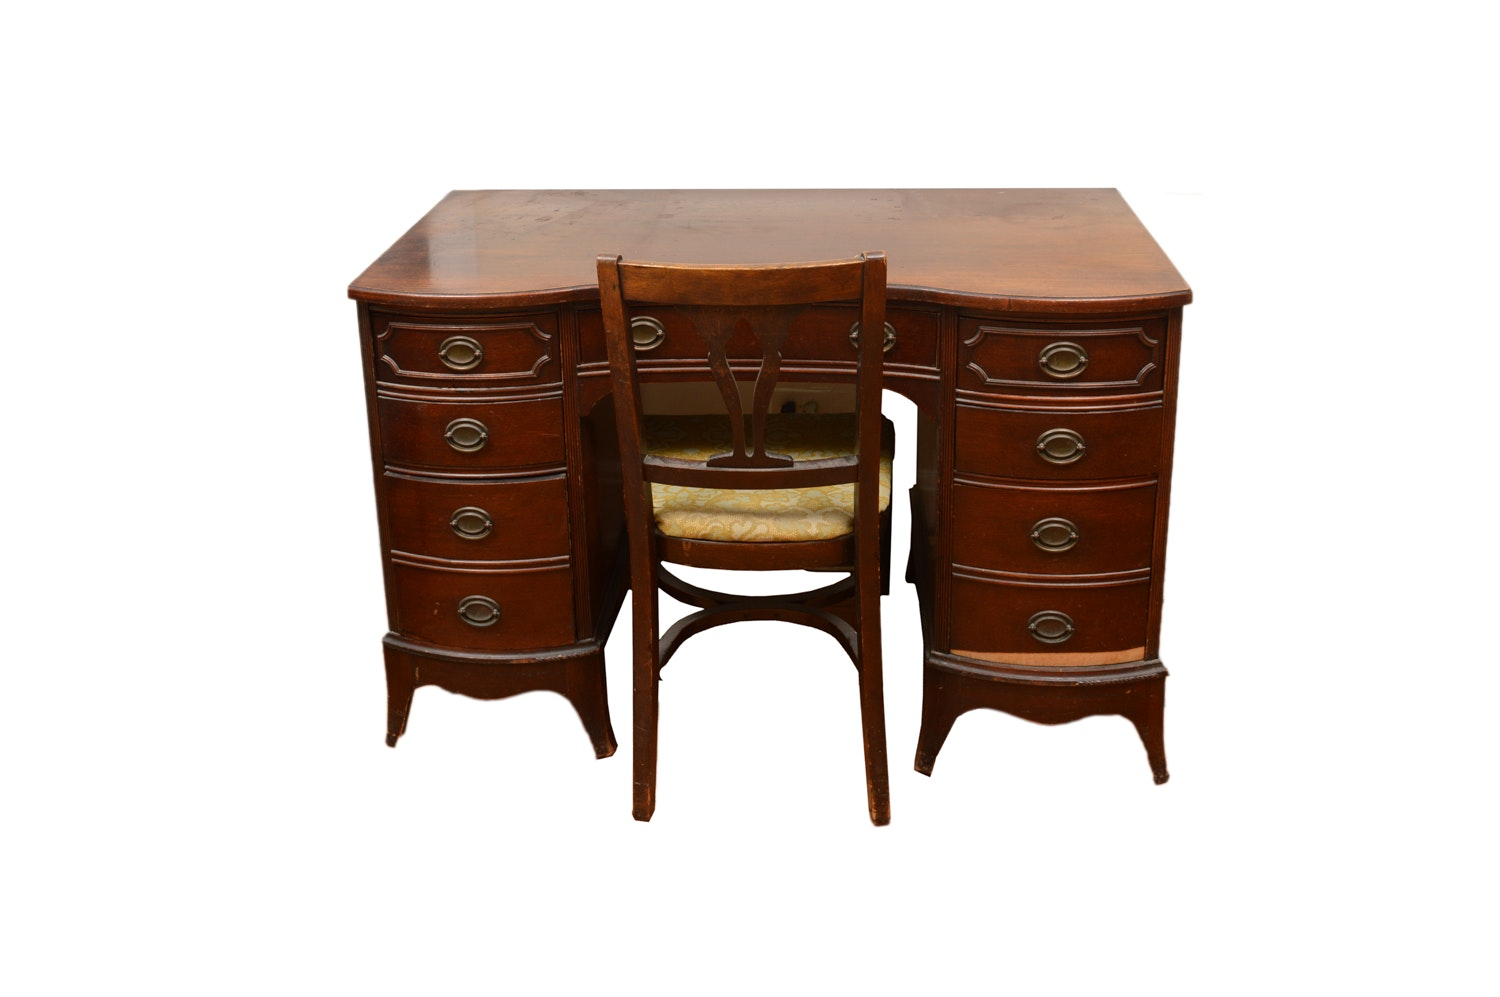 Vintage Hepplewhite Style Mahogany Kneehole Desk with Chair